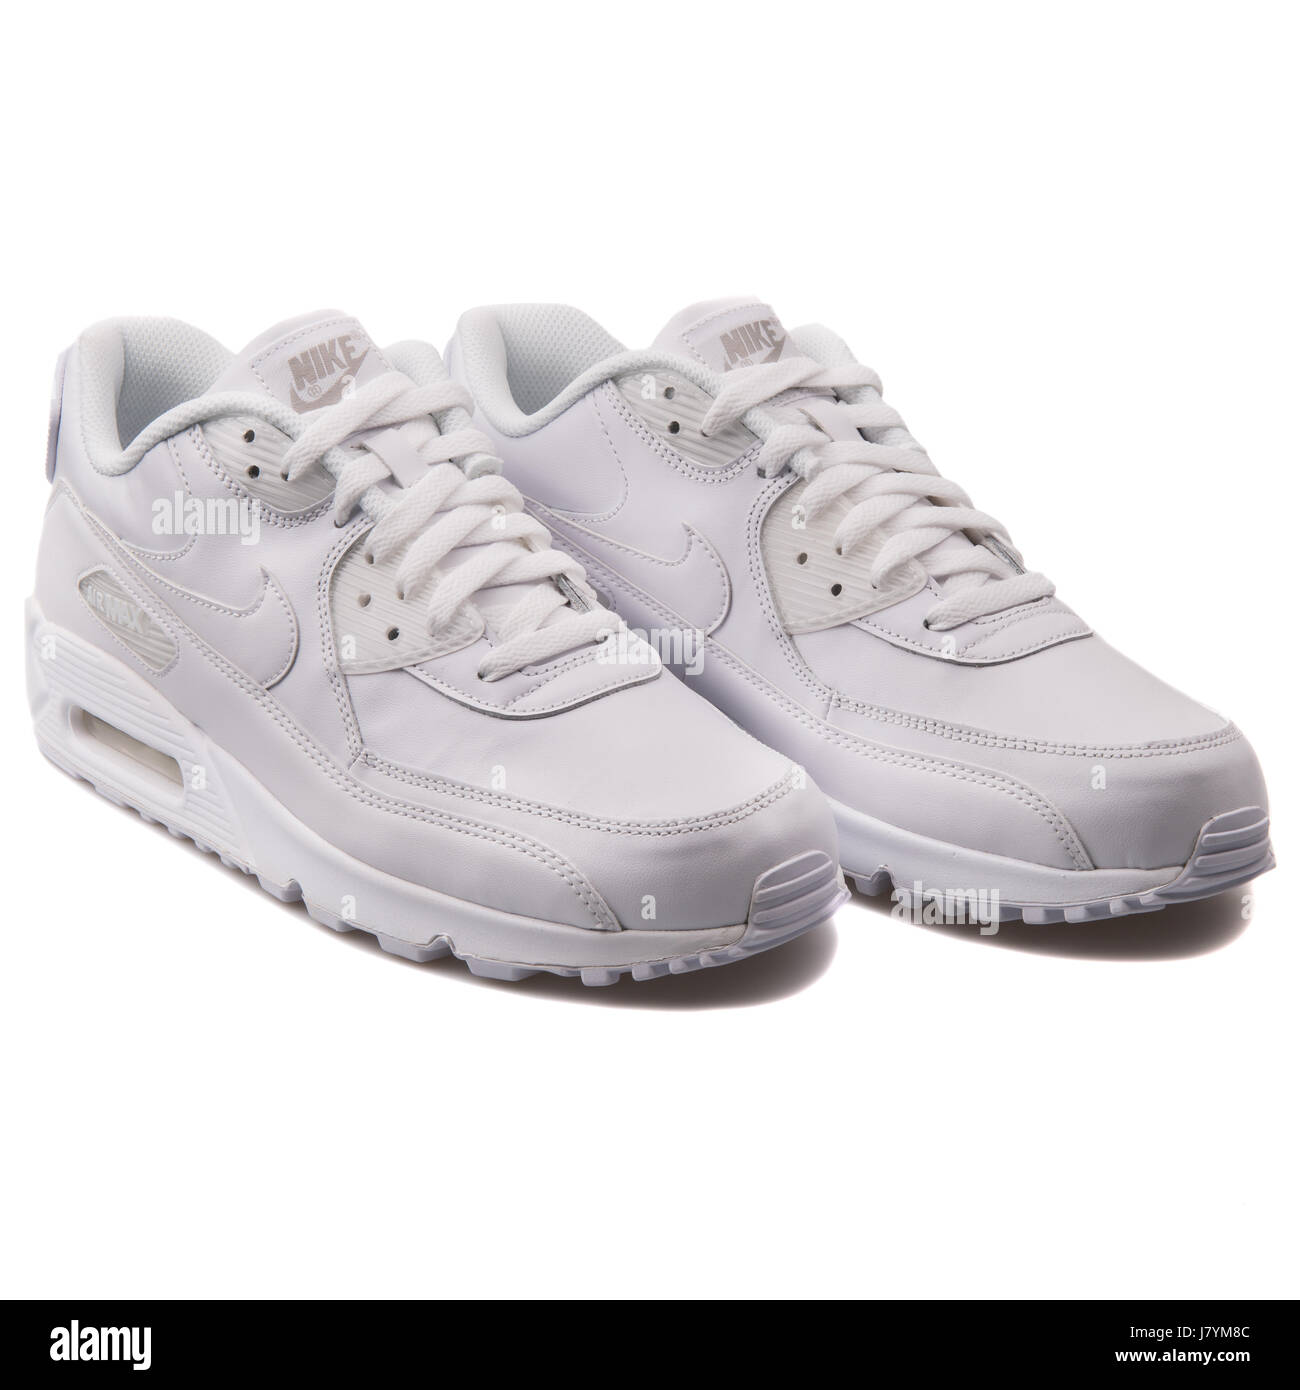 low cost nike air max cuero trainers c5f29 6a95a